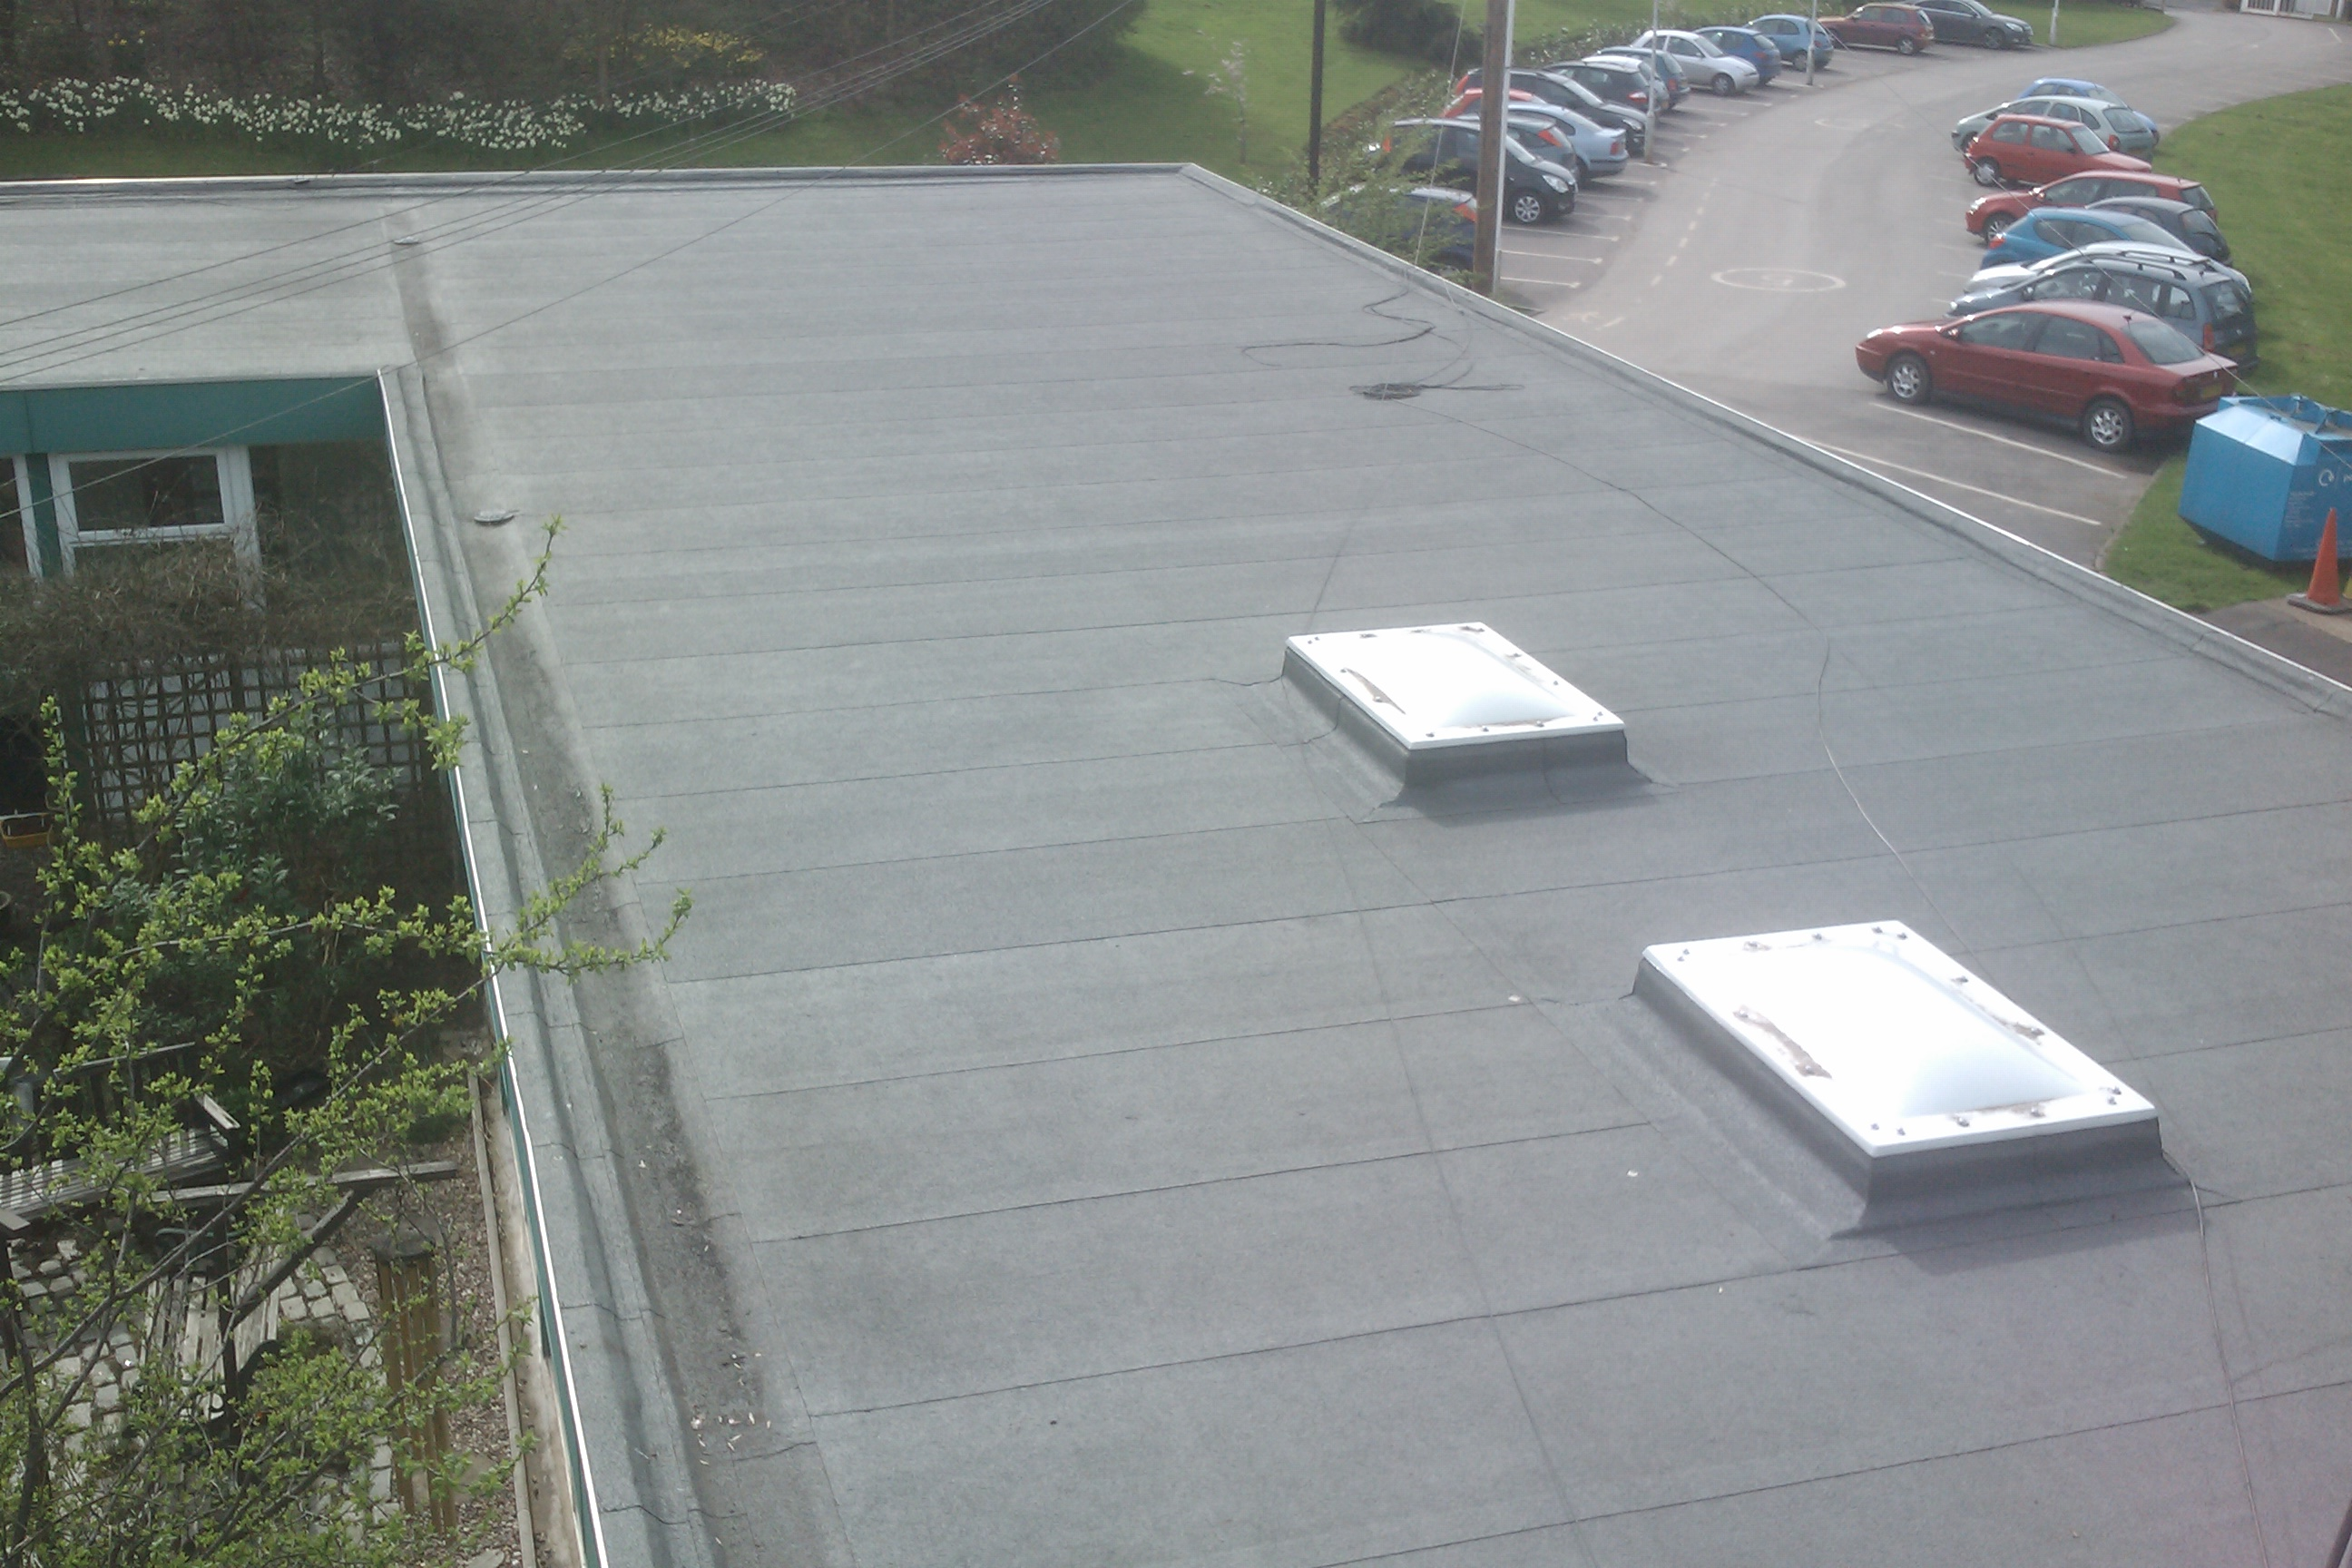 Deboflex High Performance Felt Roofing From Futura Roof In